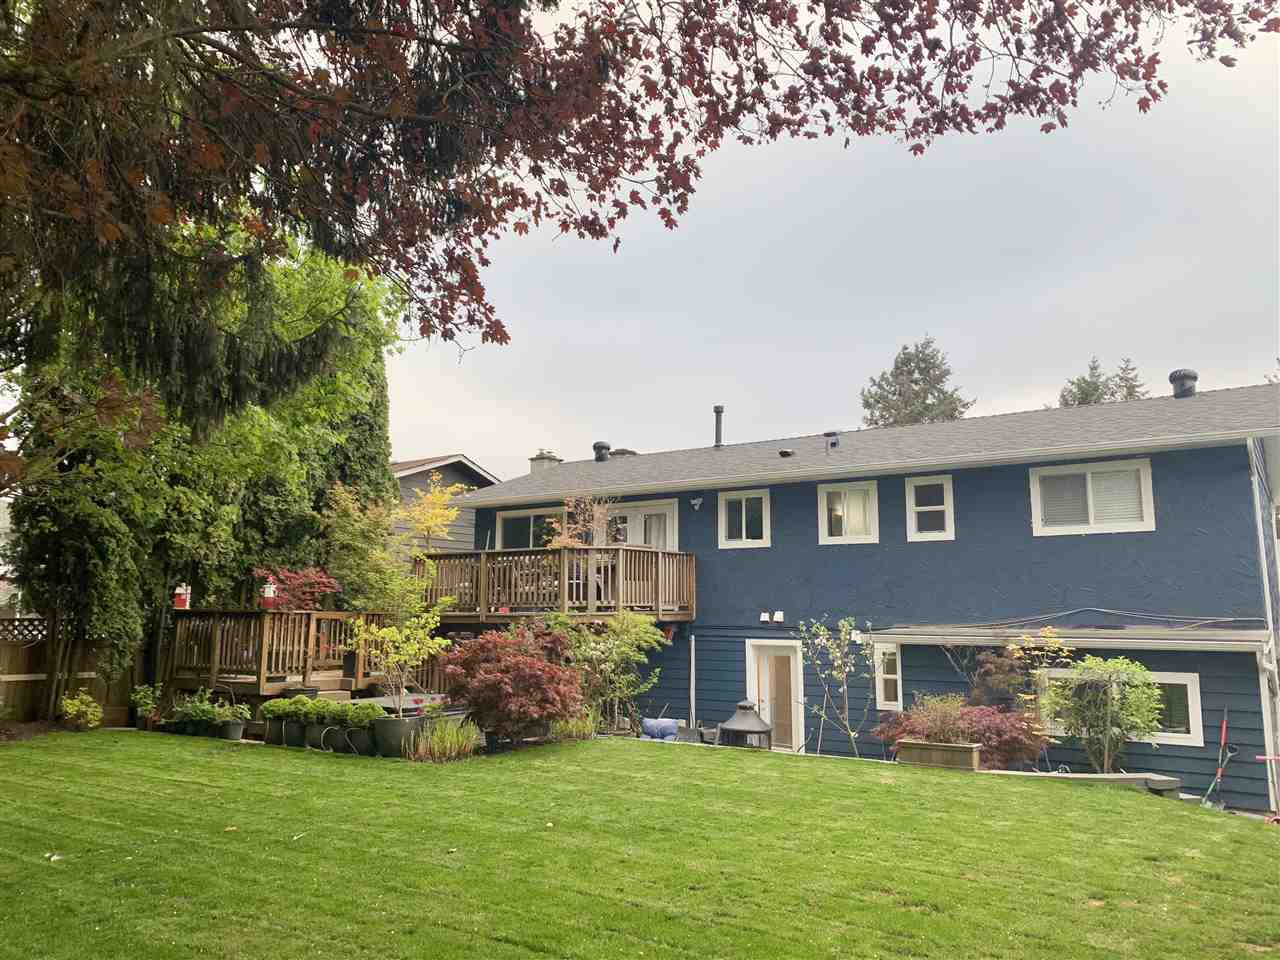 Main Photo: 4942 208A Street in Langley: Langley City House for sale : MLS®# R2453894